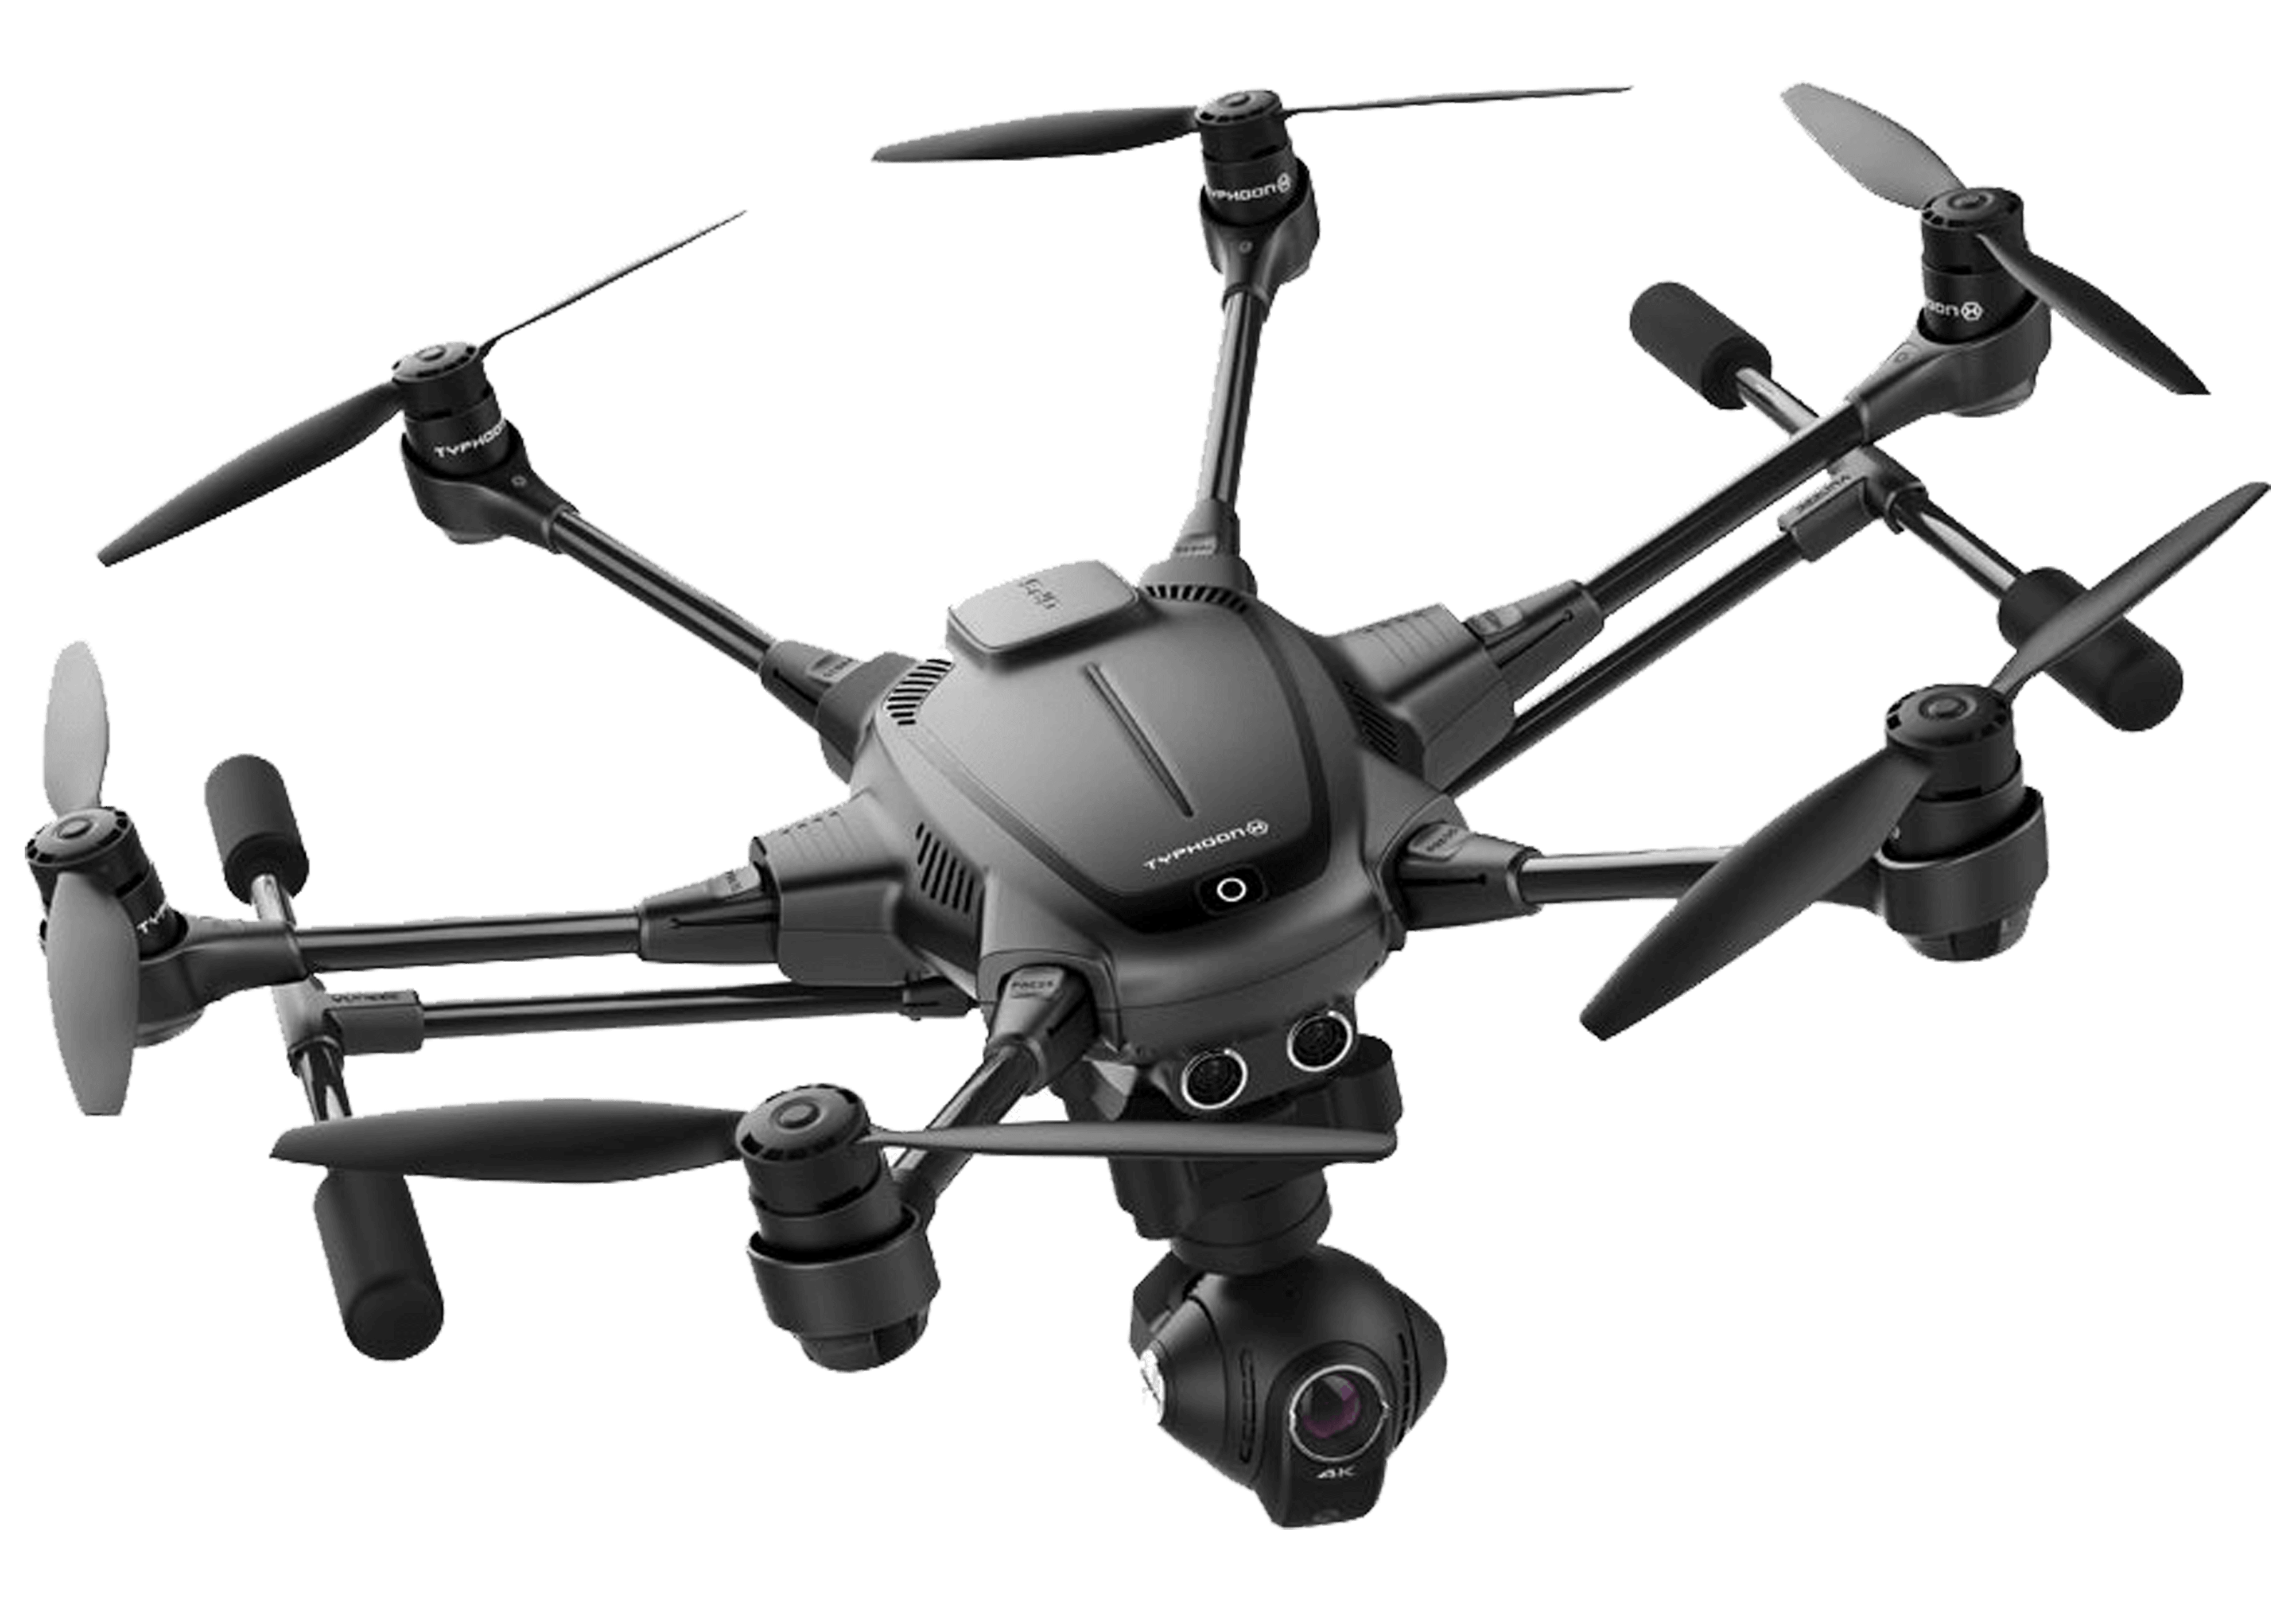 Word tattoo cover up ideas drone for sale  yuneec tornado  professional hexacopter drone